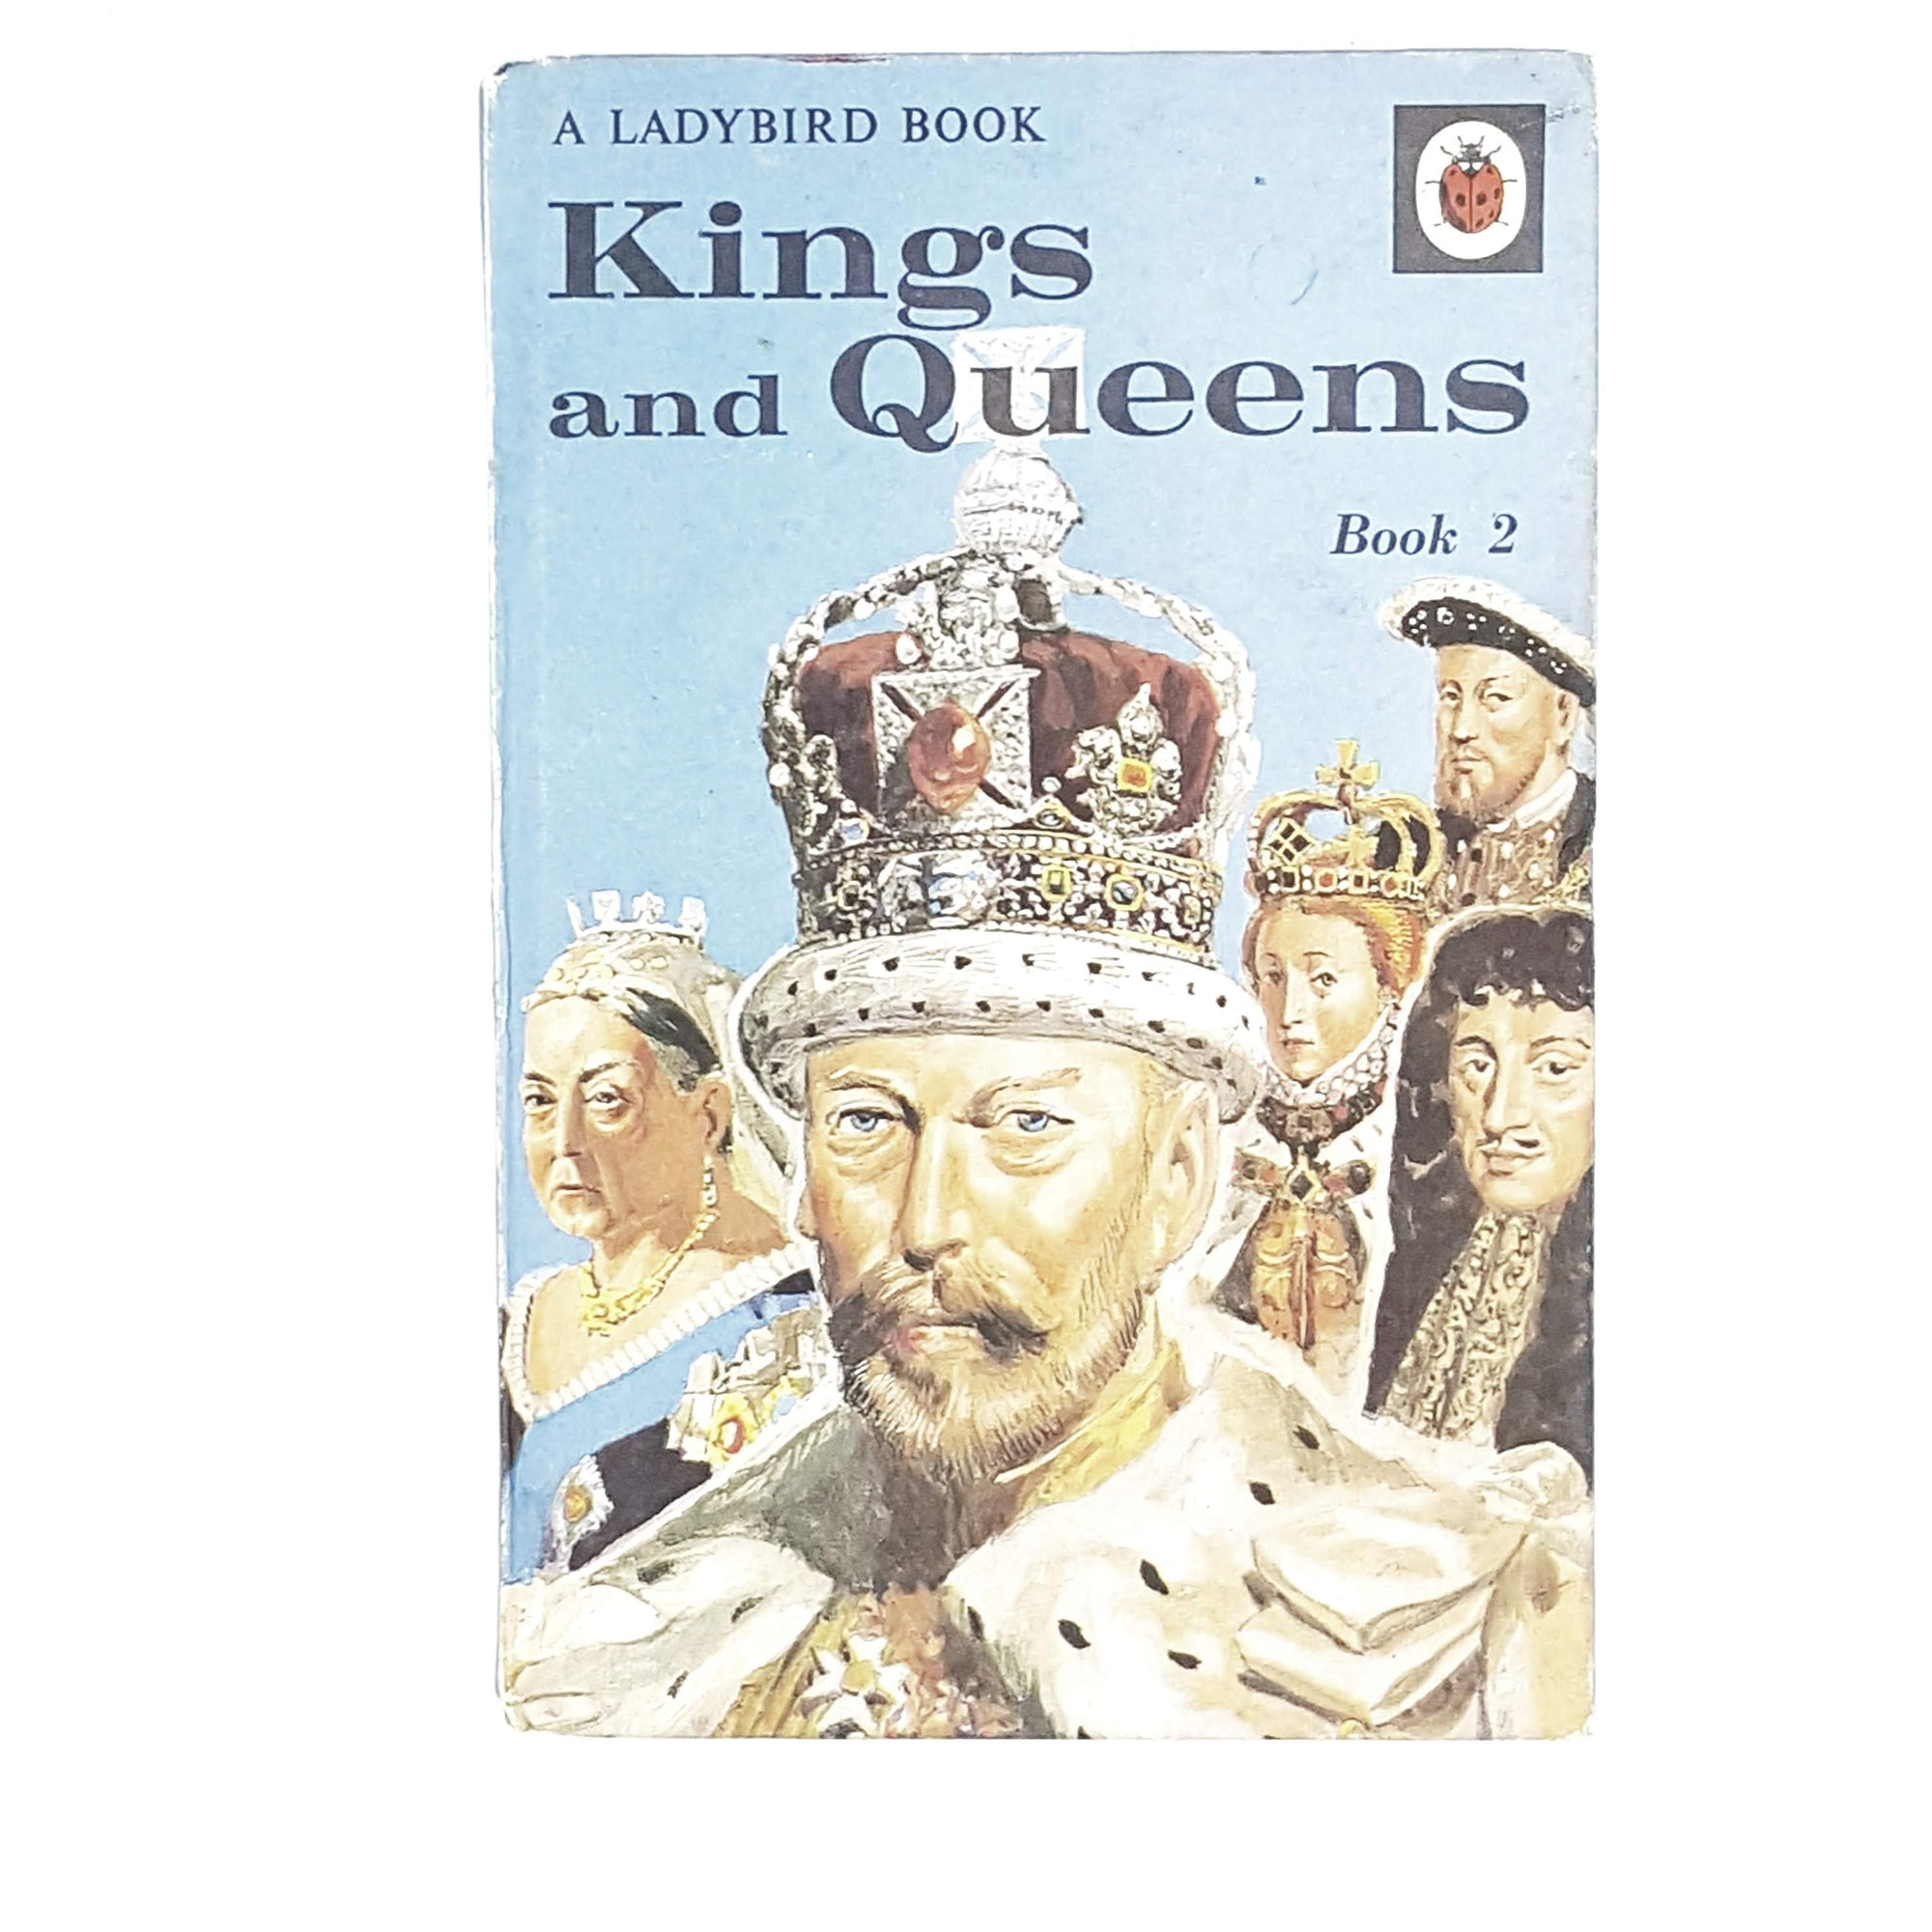 ladybird-history-kings-and-queens-ii-1968-vintage-online-bookstore-country-house-library